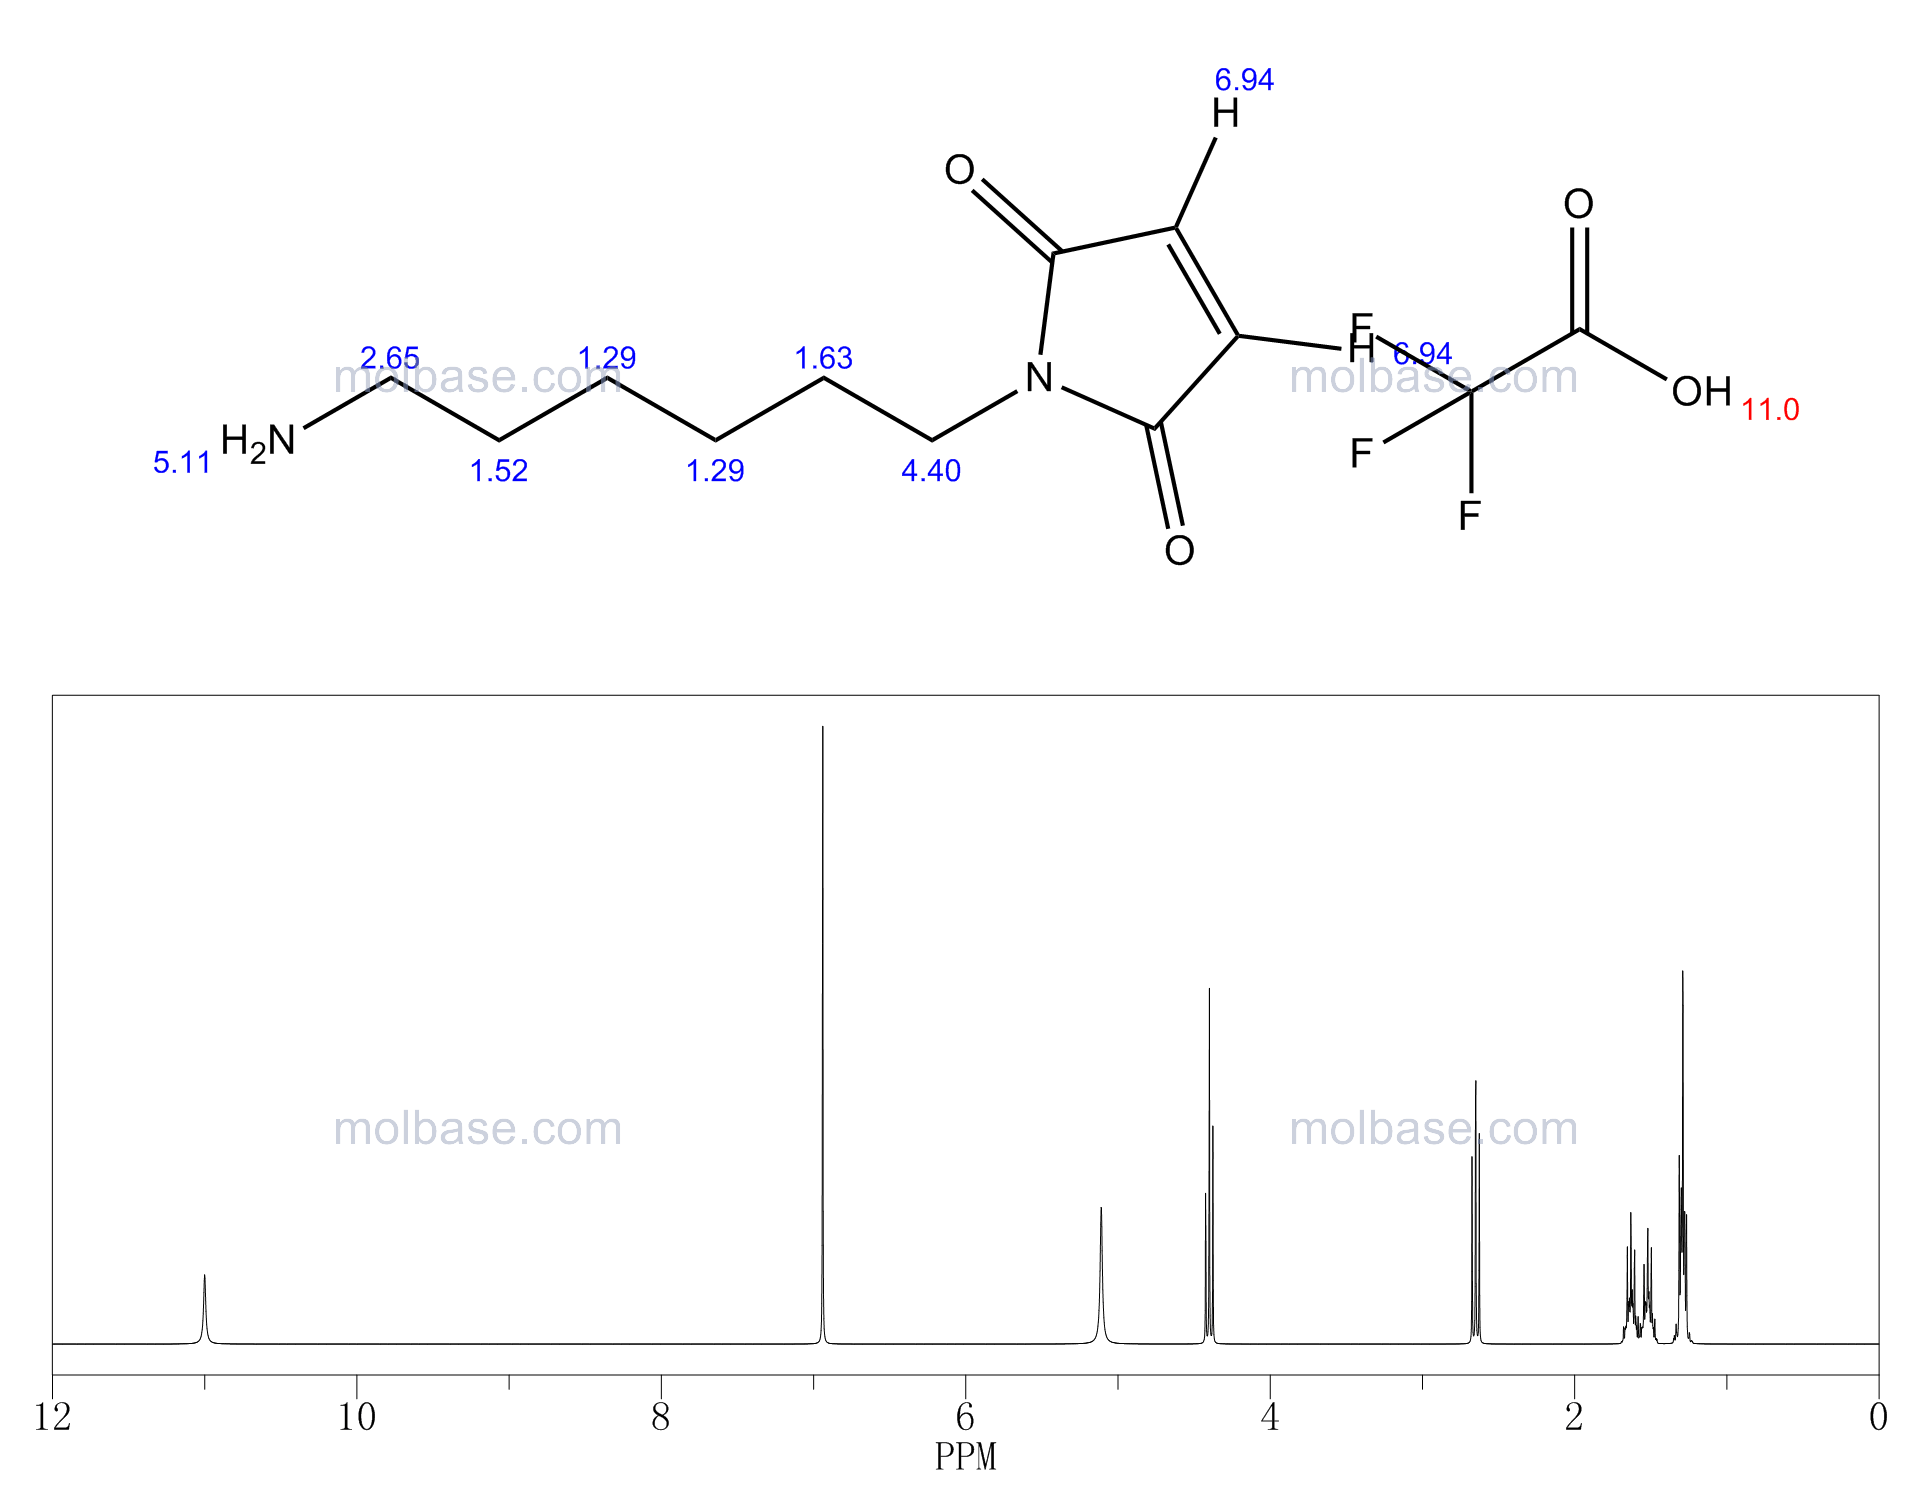 1-(6-Aminohexyl)-1H-pyrrole-2,5-dione 2,2,2-trifluoroacetate NMR spectra analysis, Chemical CAS NO. 731862-92-3 NMR spectral analysis, 1-(6-Aminohexyl)-1H-pyrrole-2,5-dione 2,2,2-trifluoroacetate C-NMR spectrum